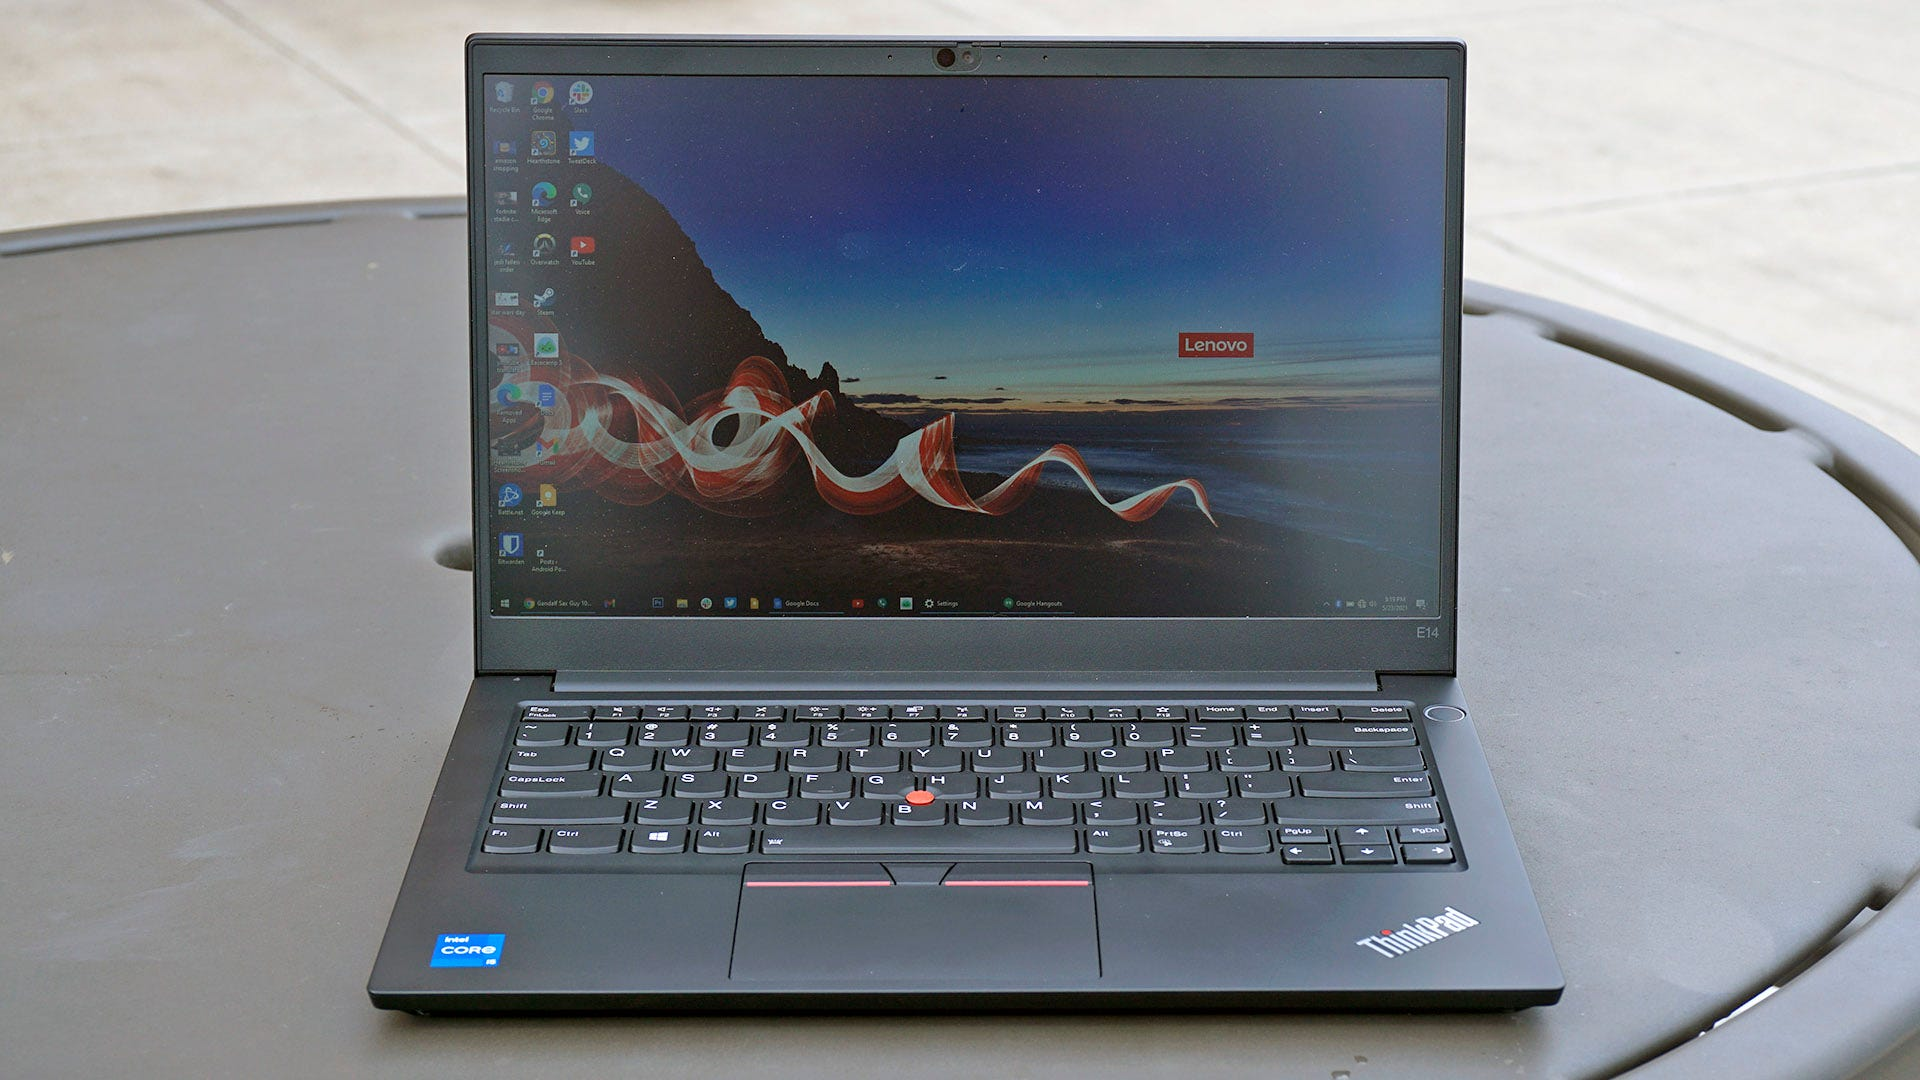 ThinkPad E14 from the front